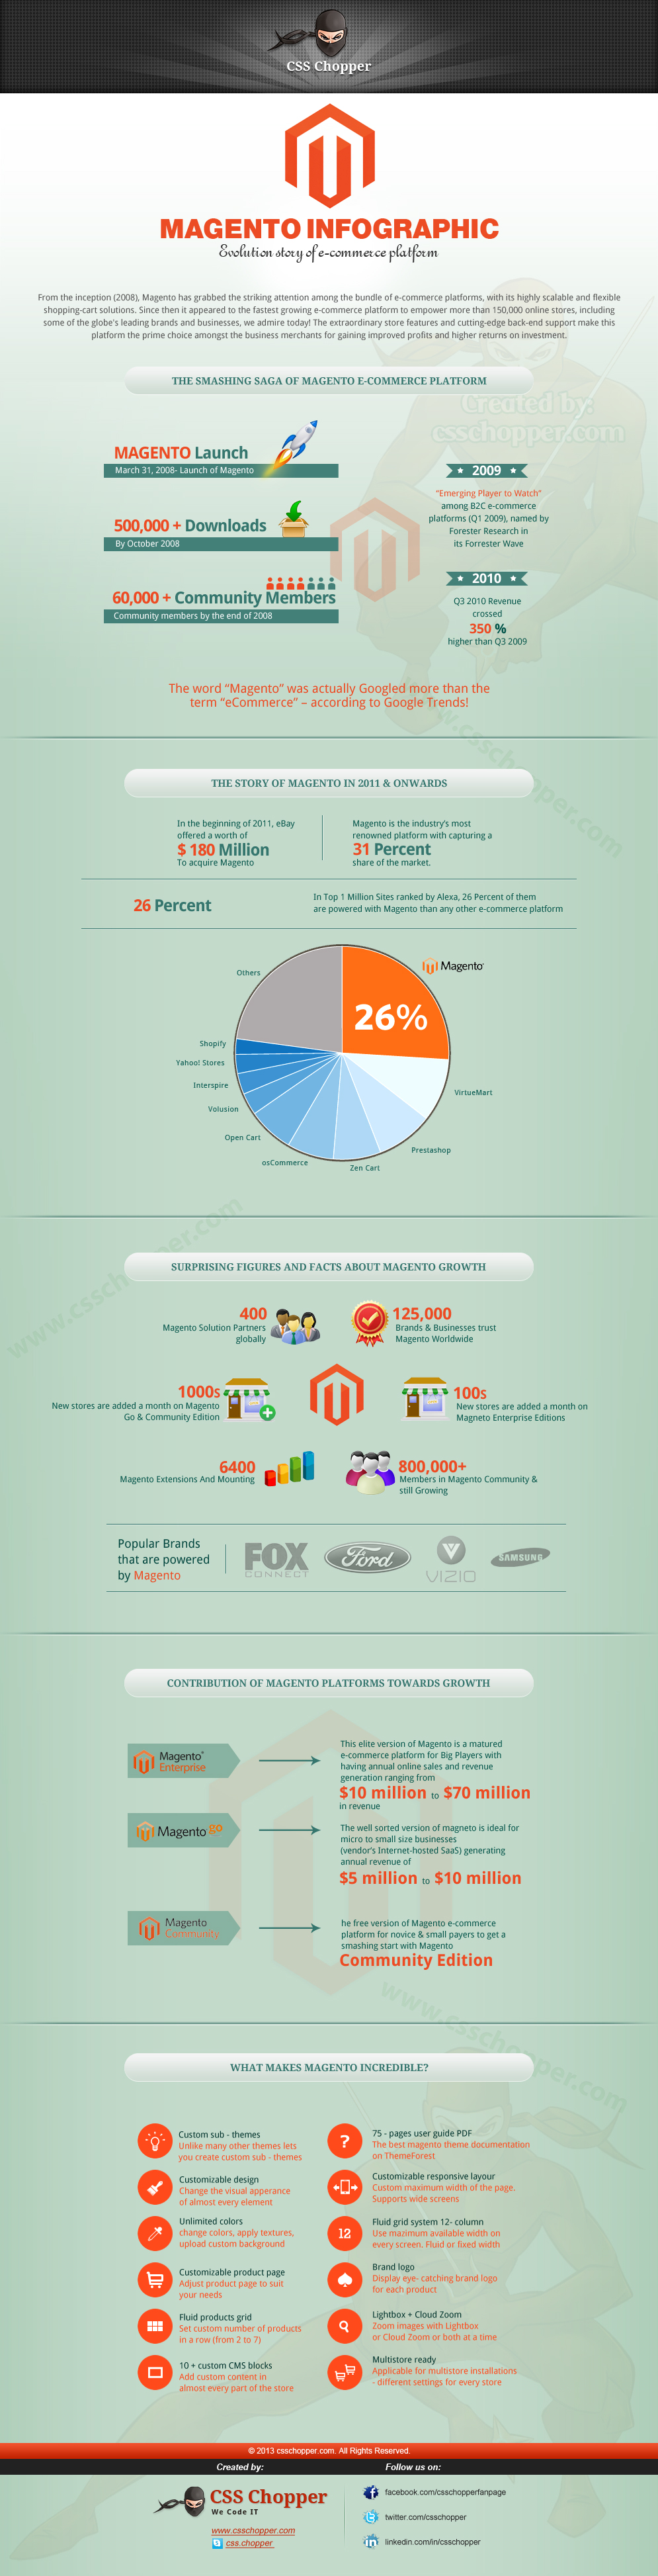 Facts About Magento